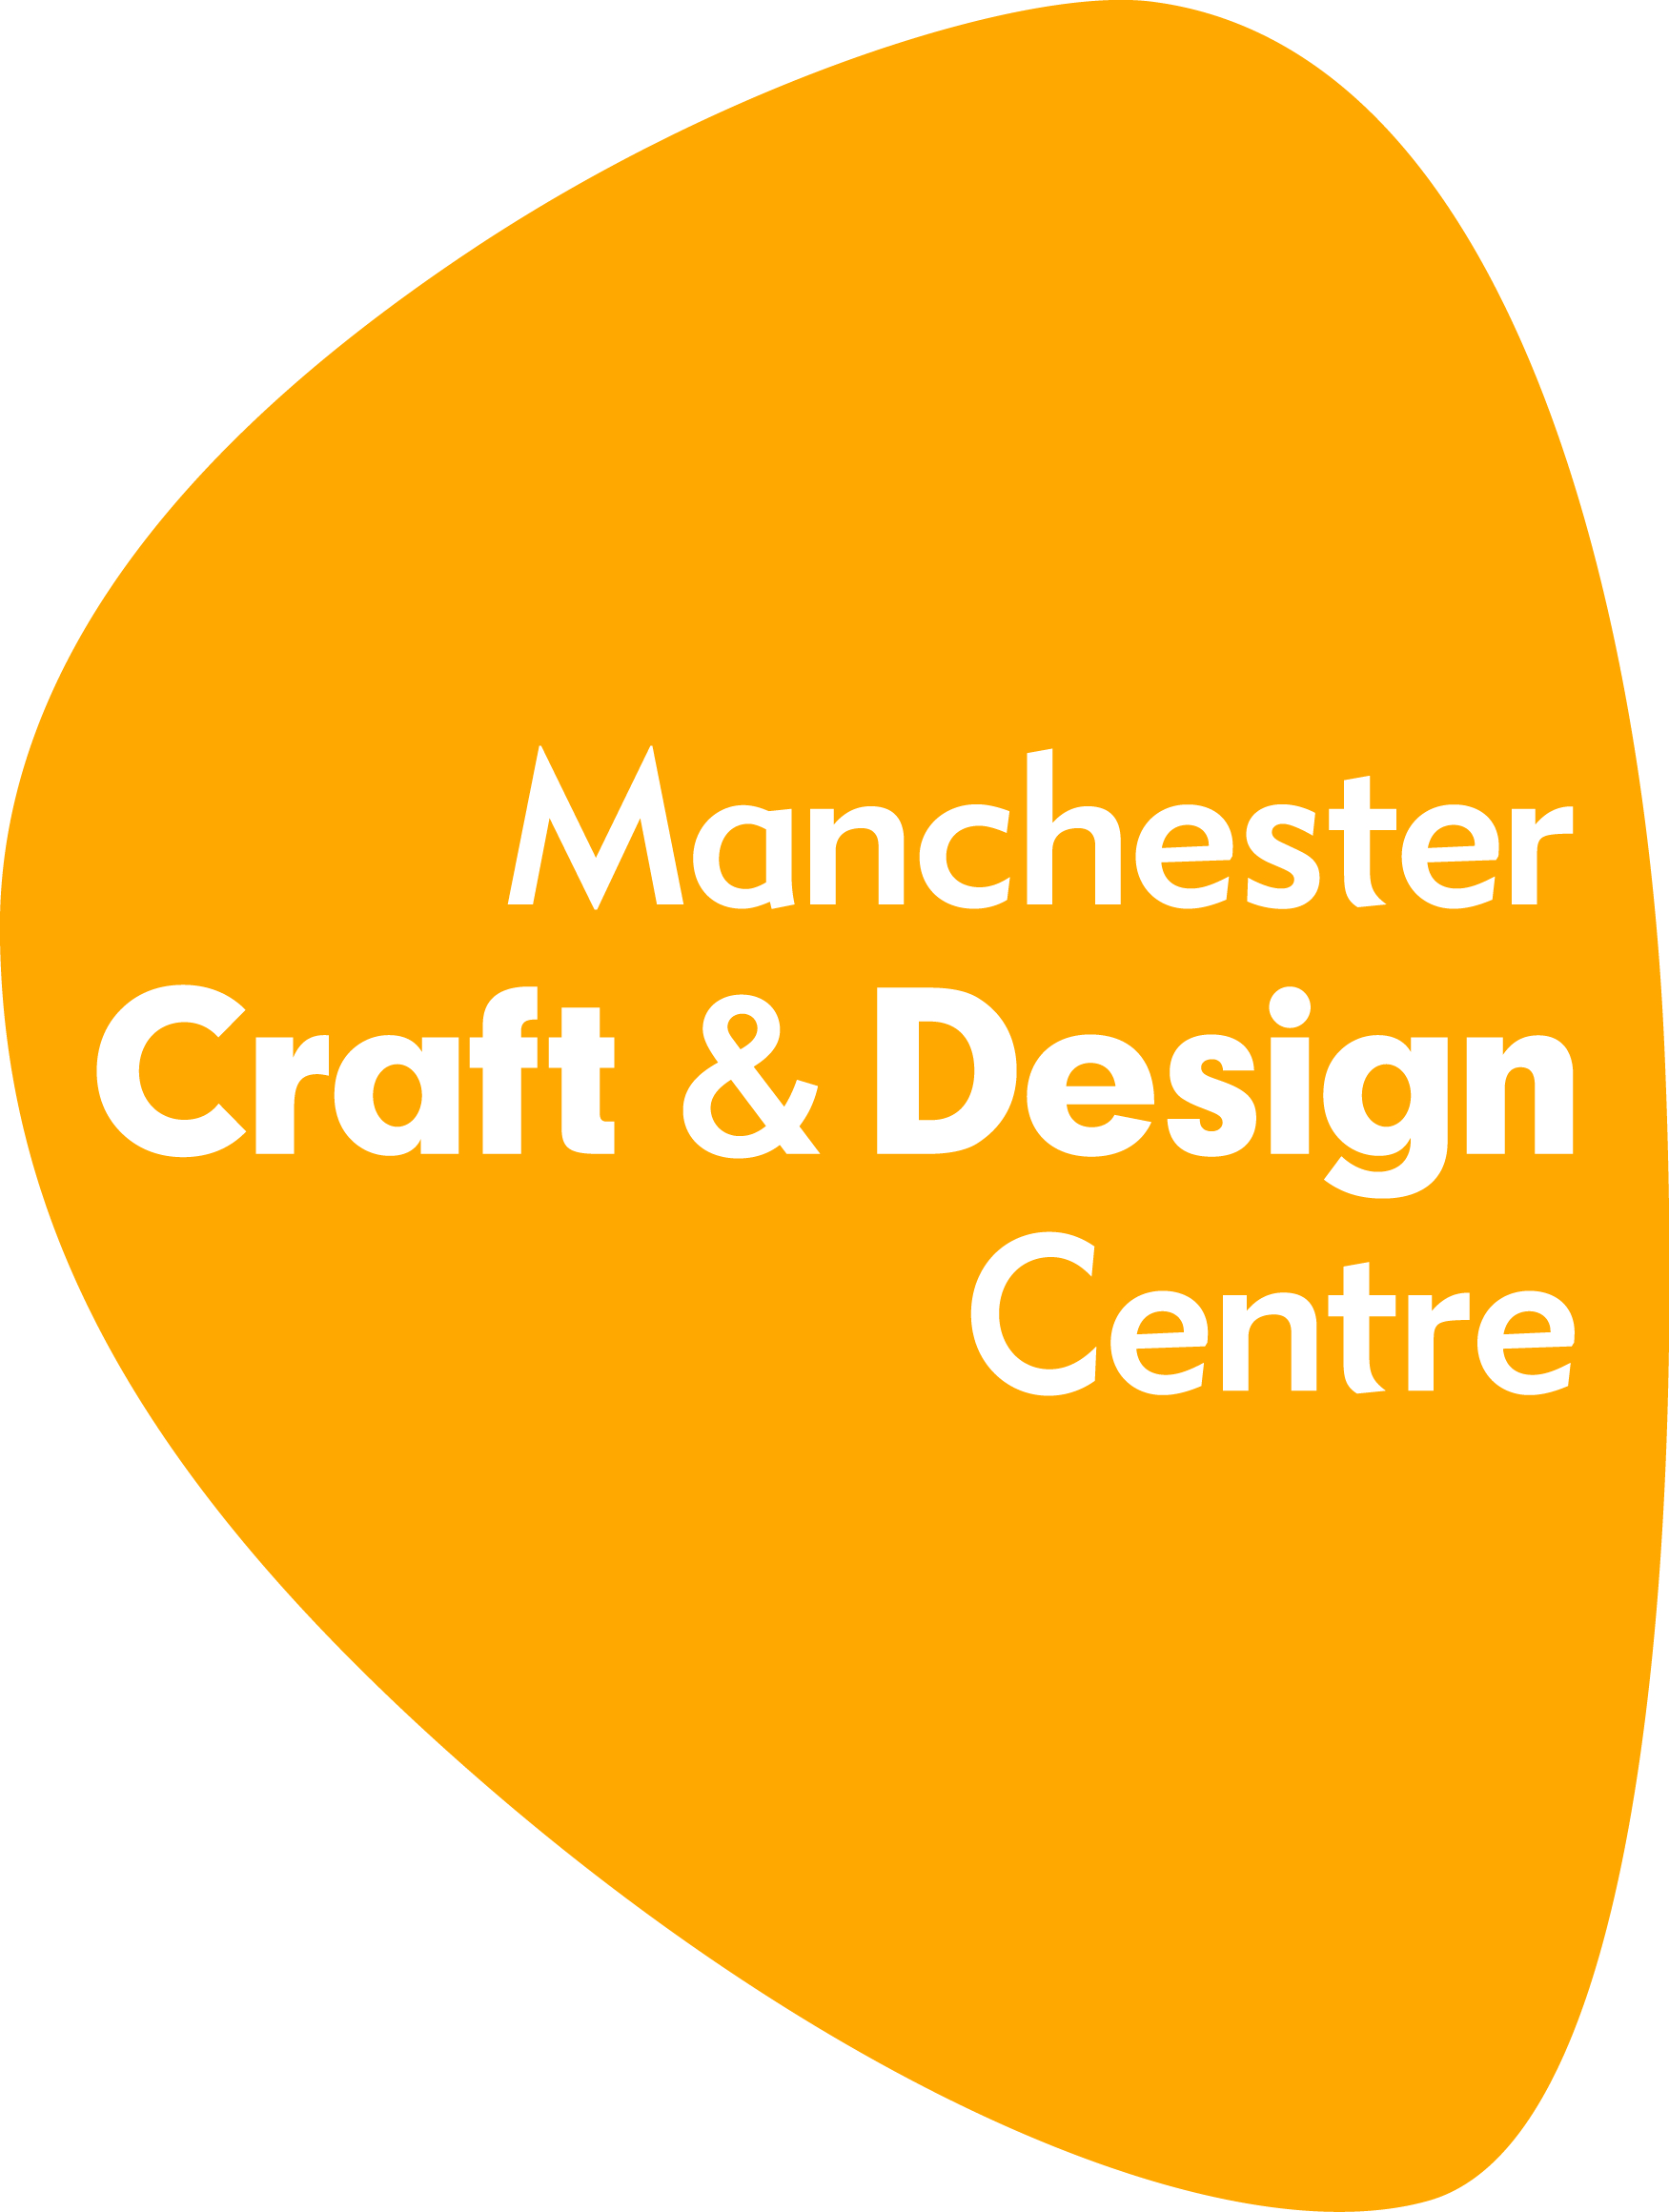 Manchester Craft & Design Centre logo